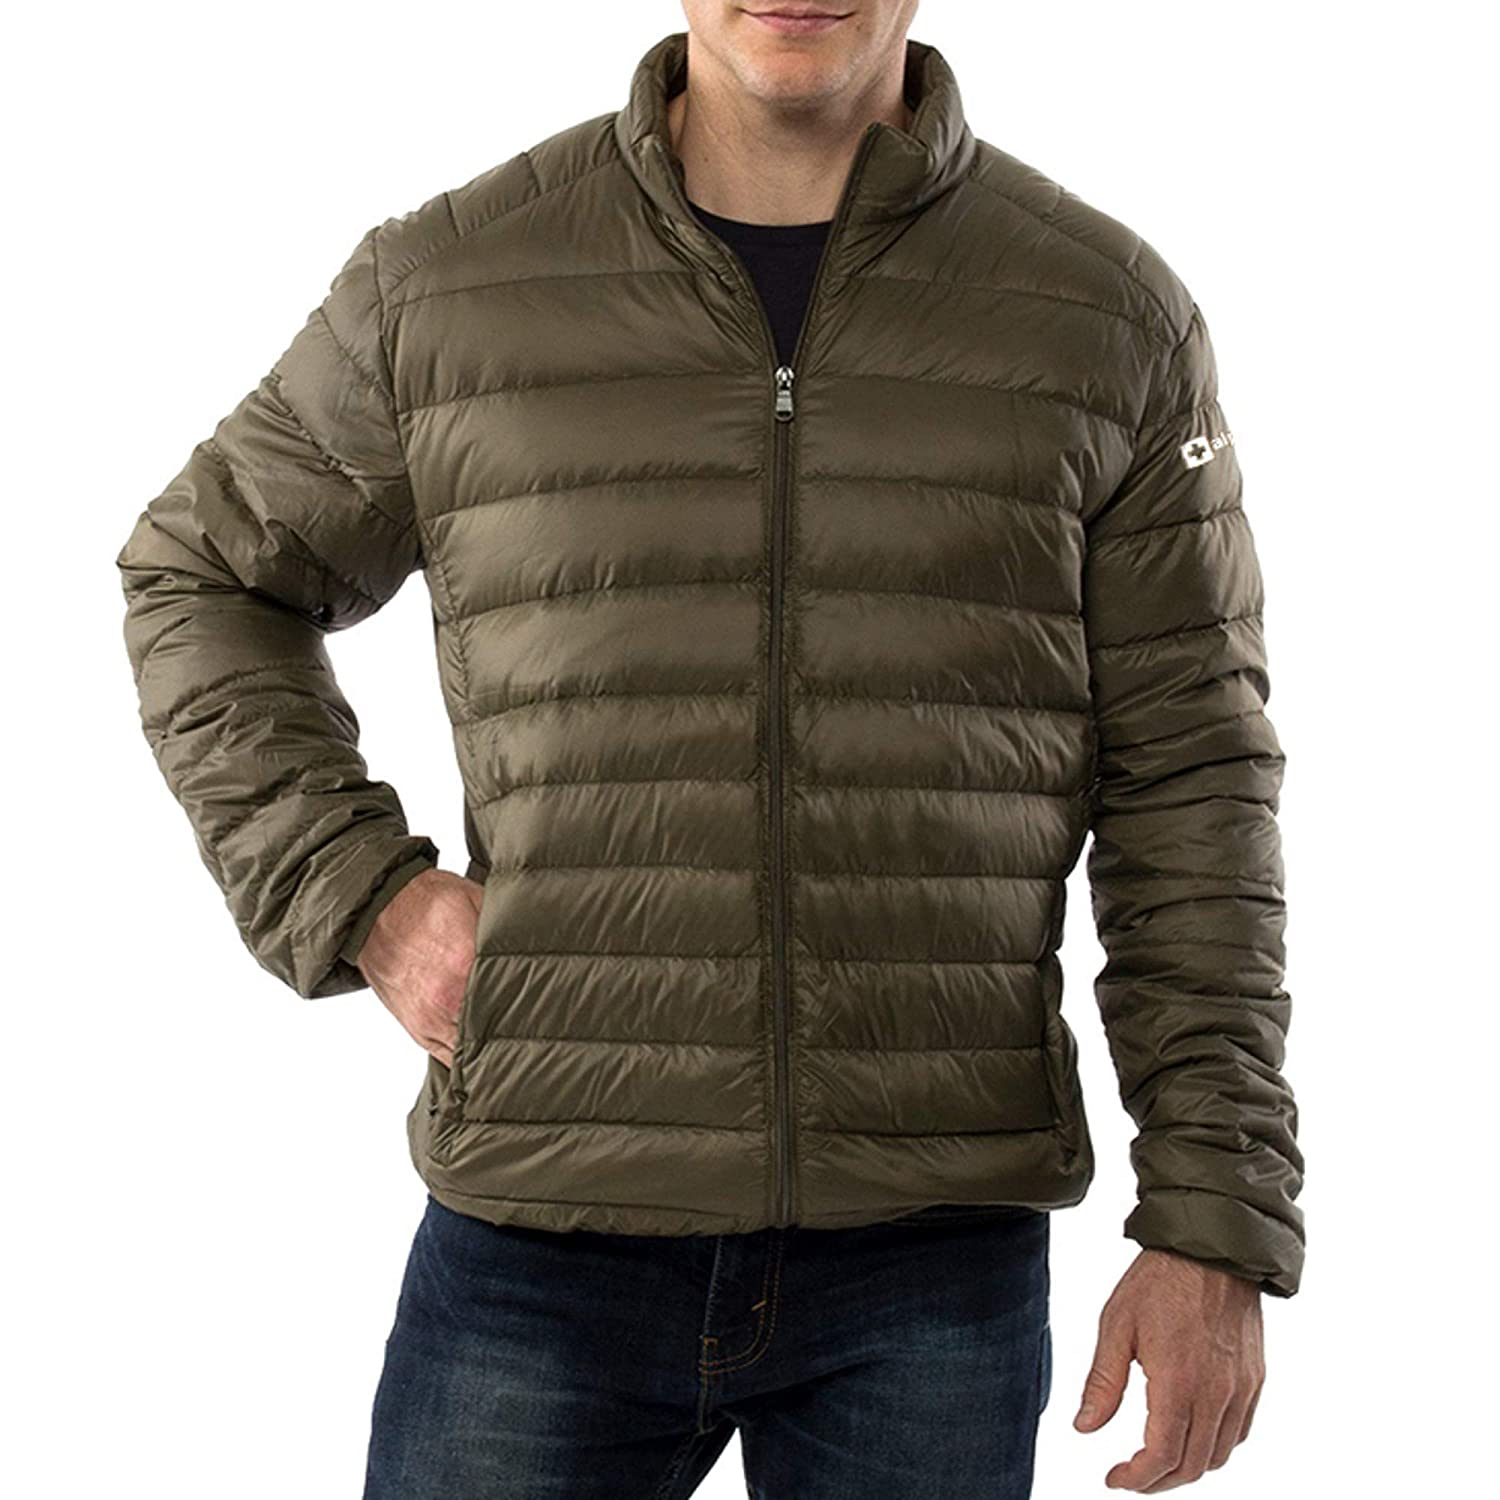 31250d027f5 alpine swiss Niko Mens Down Jacket Puffer Coat Packable Warm Insulation &  Feather Light Weight at Amazon Men's Clothing store: